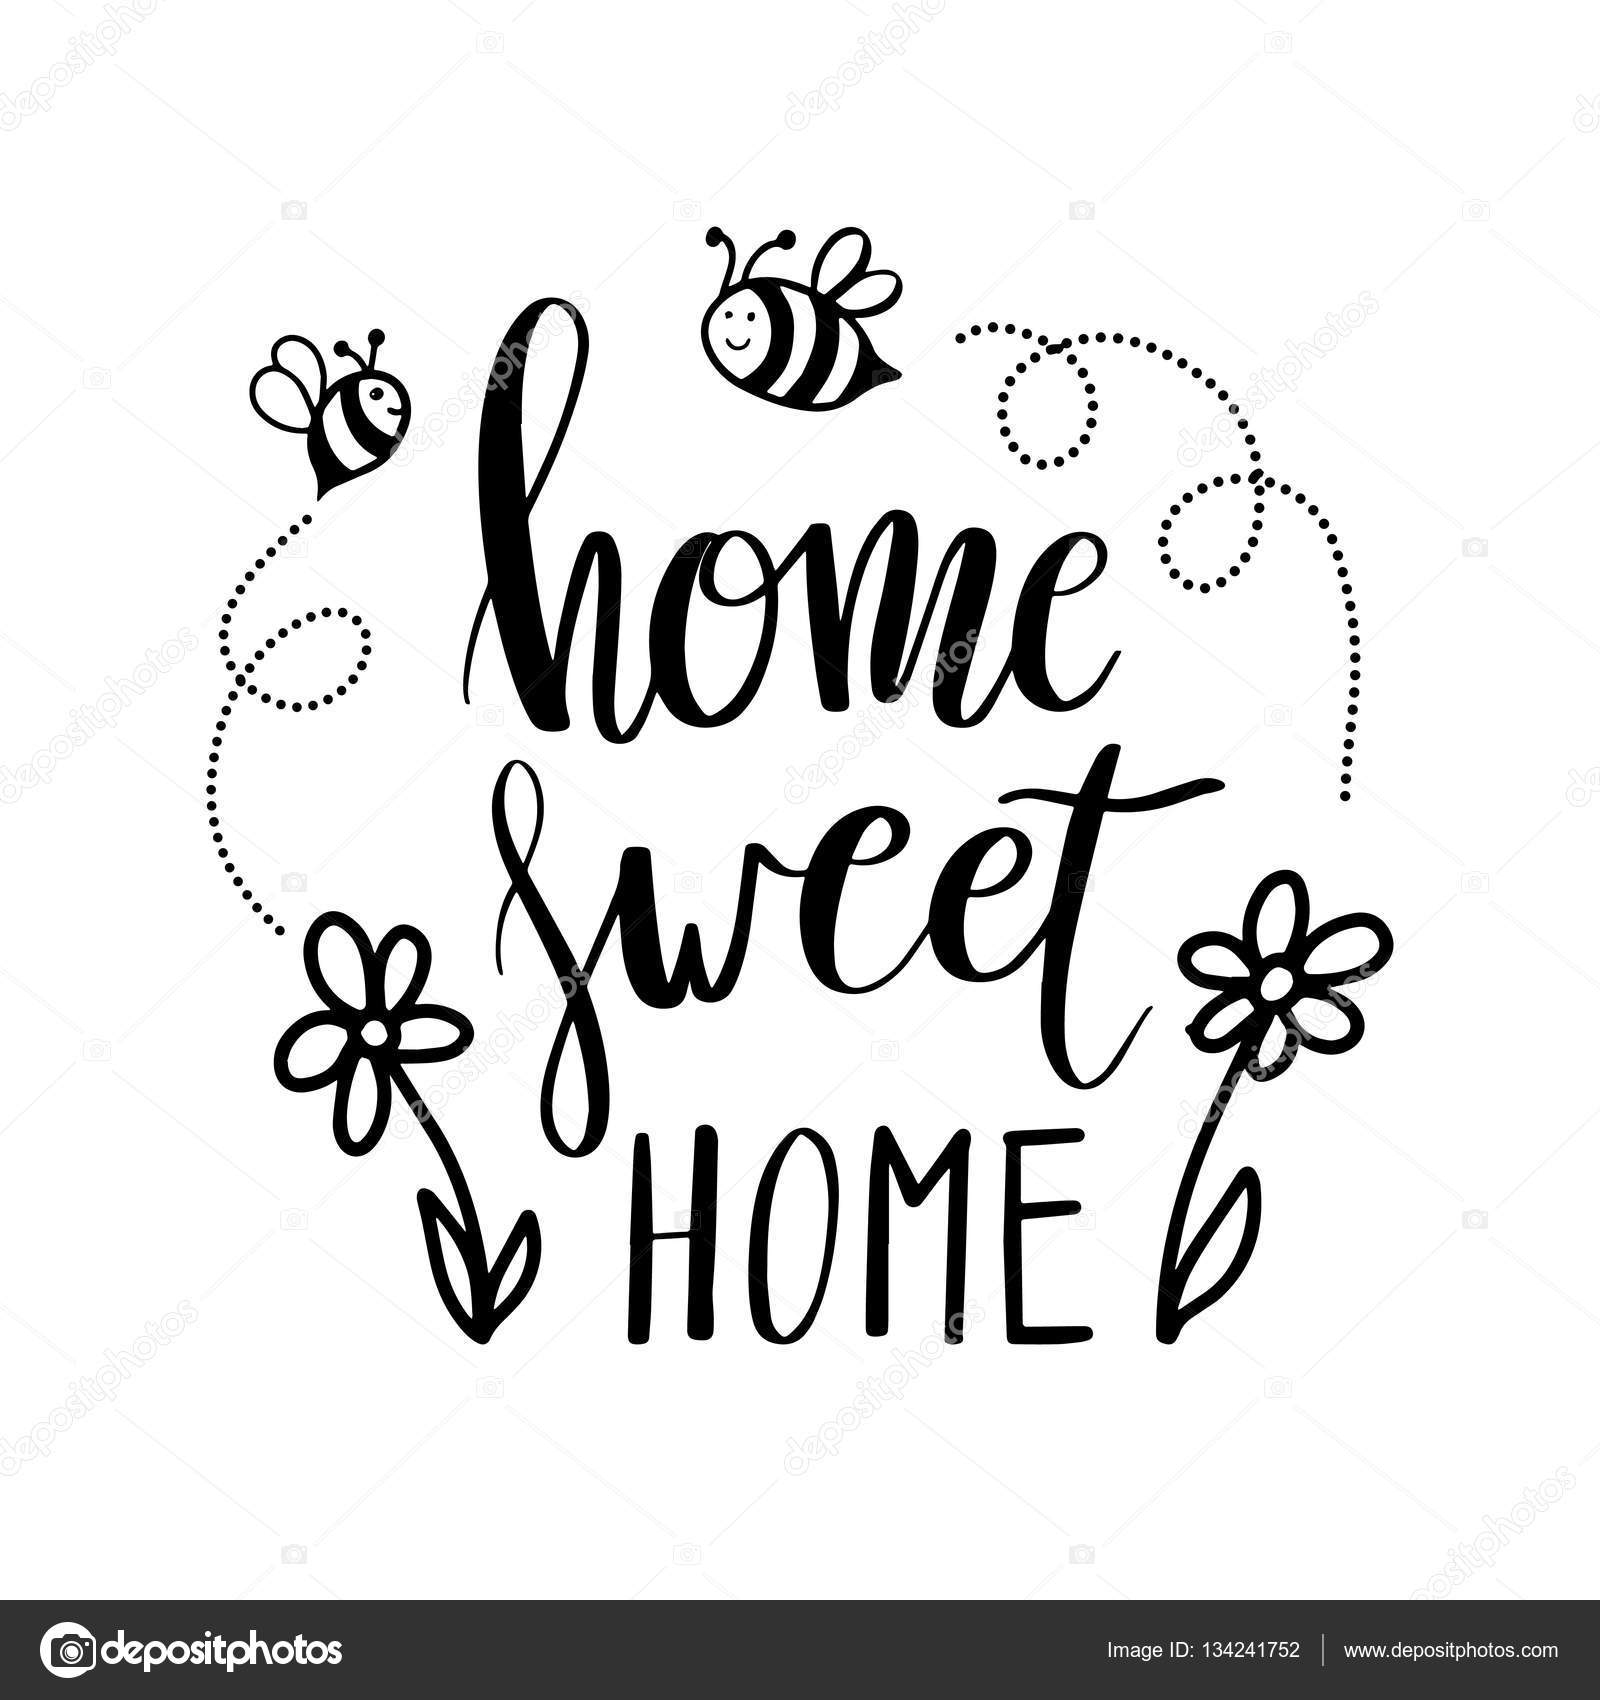 Hand Lettering Typography Poster Calligraphic Quote Home Sweet With Flowers And Bees For Posters Greeting Cards Decorations